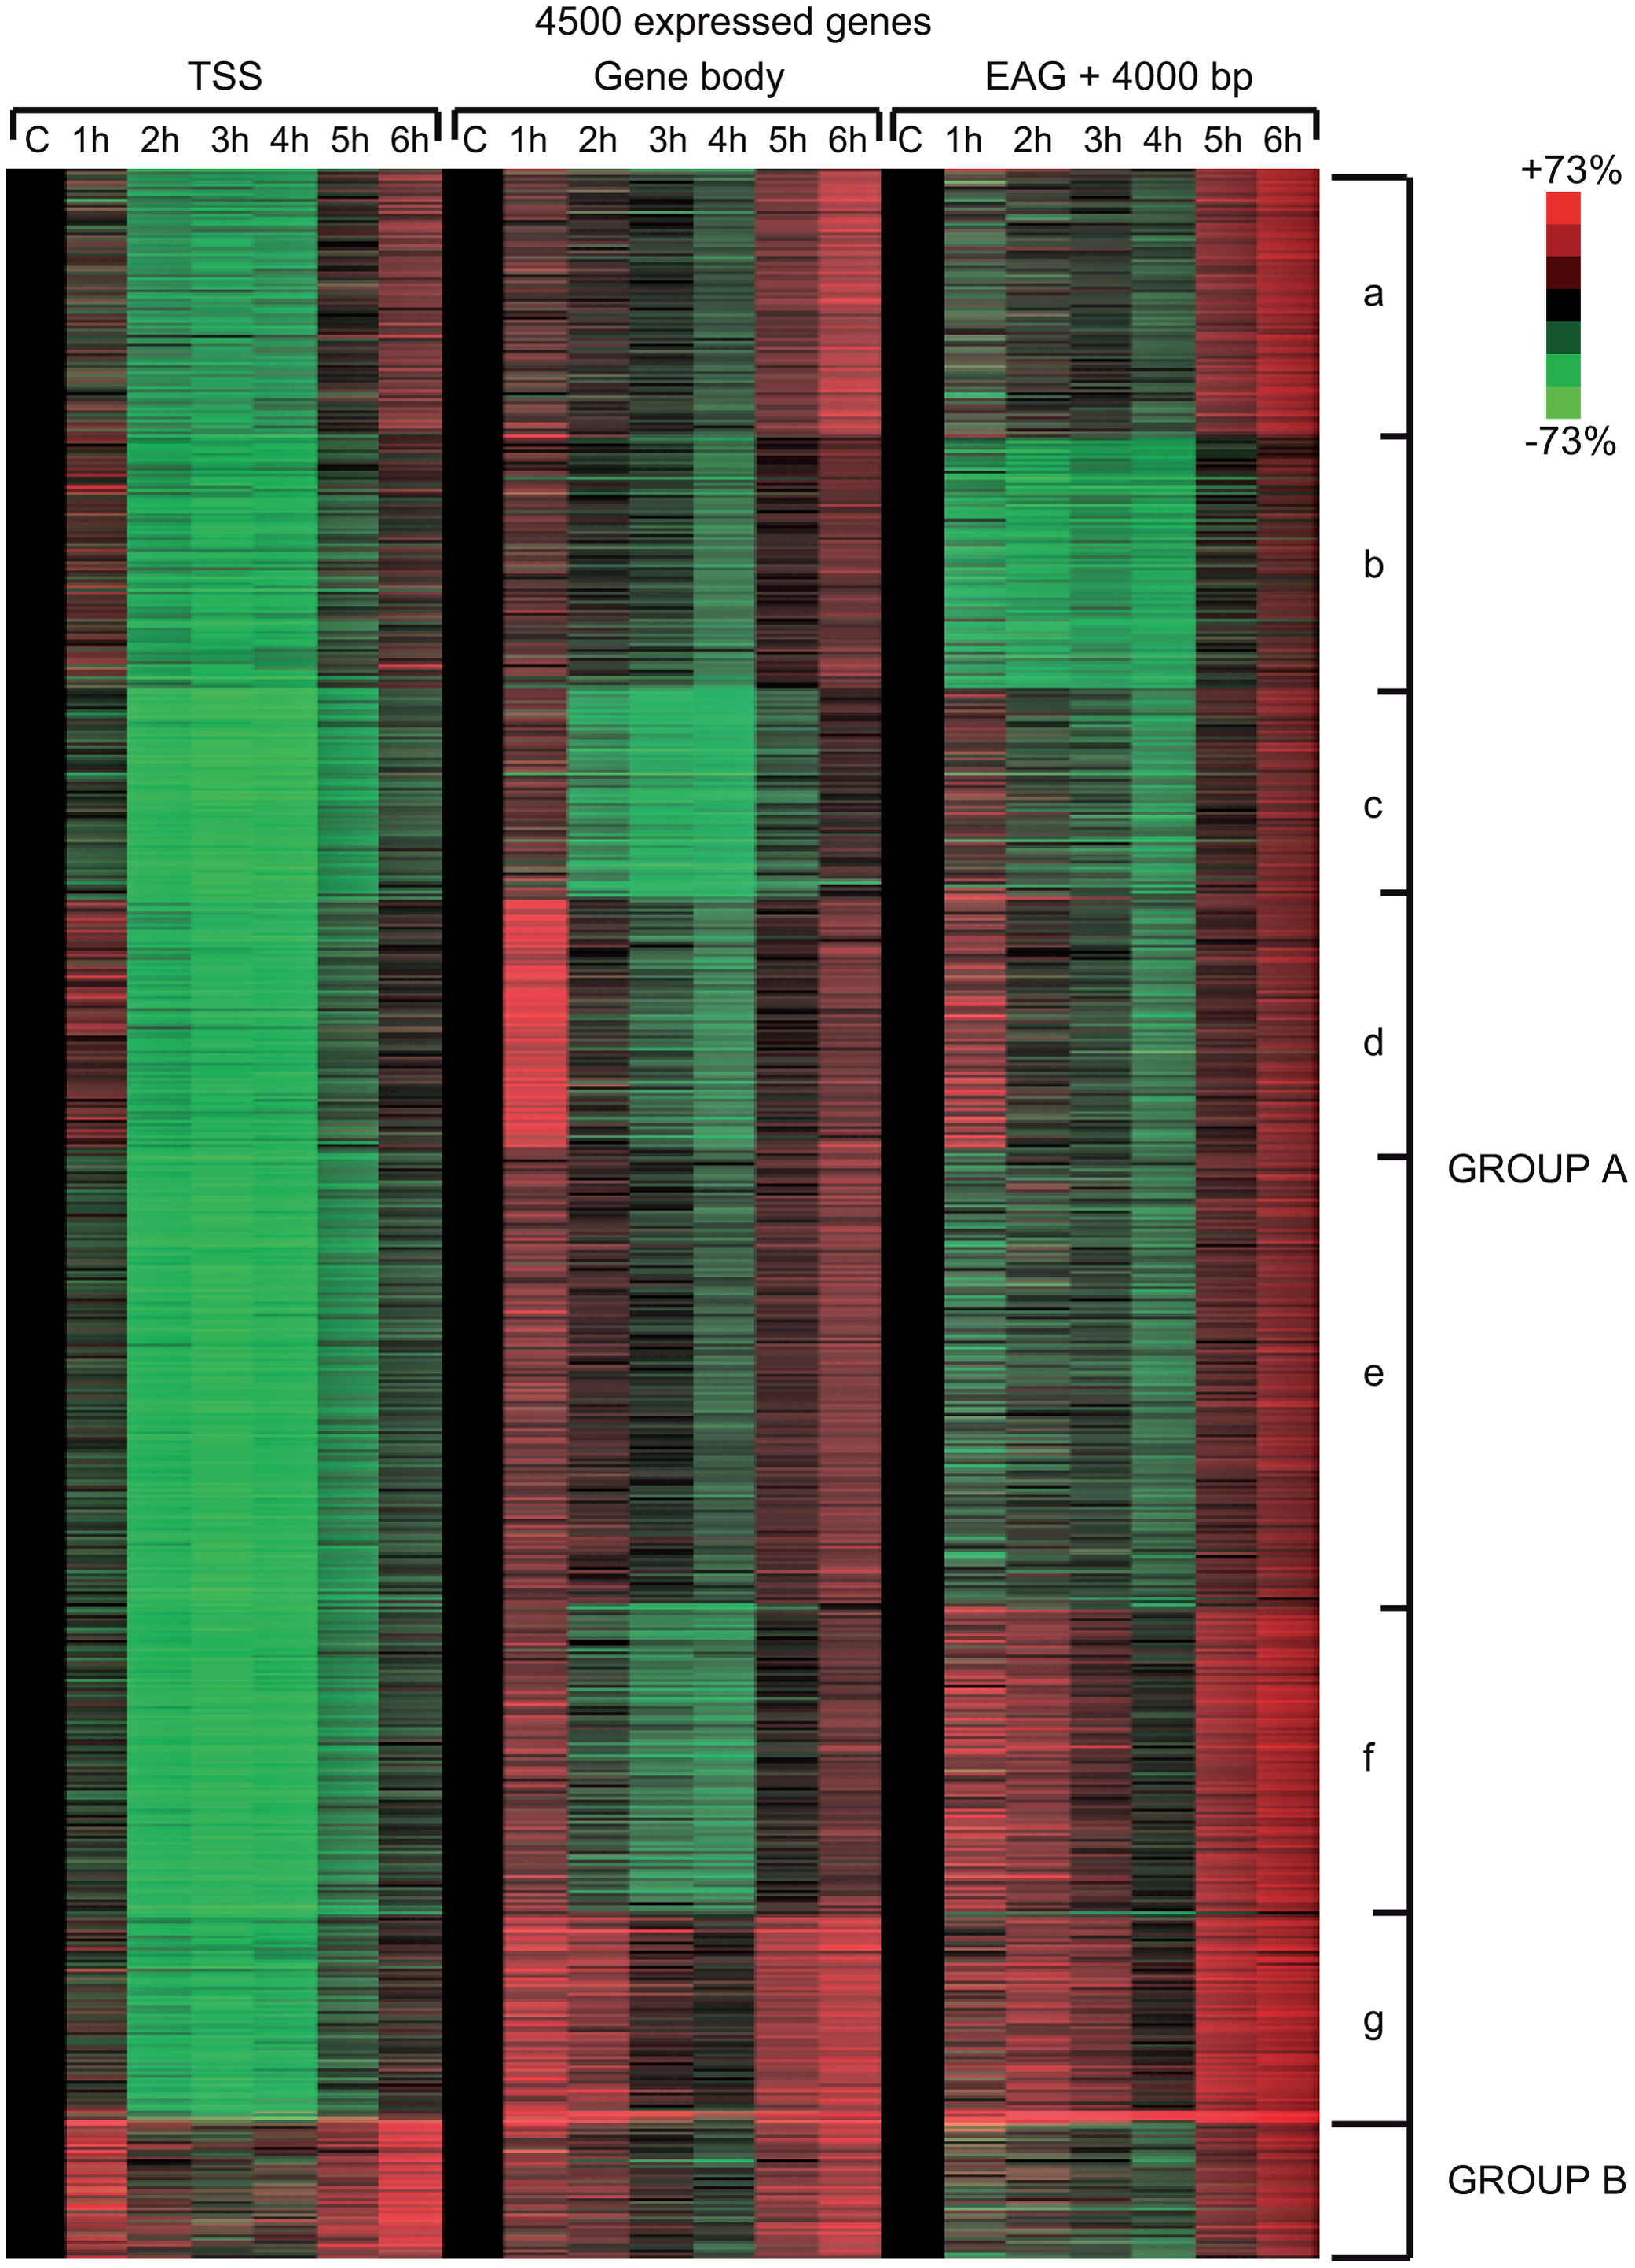 Different Pol II behavior patterns in time after UVB irradiation on 4500 expressed genes.